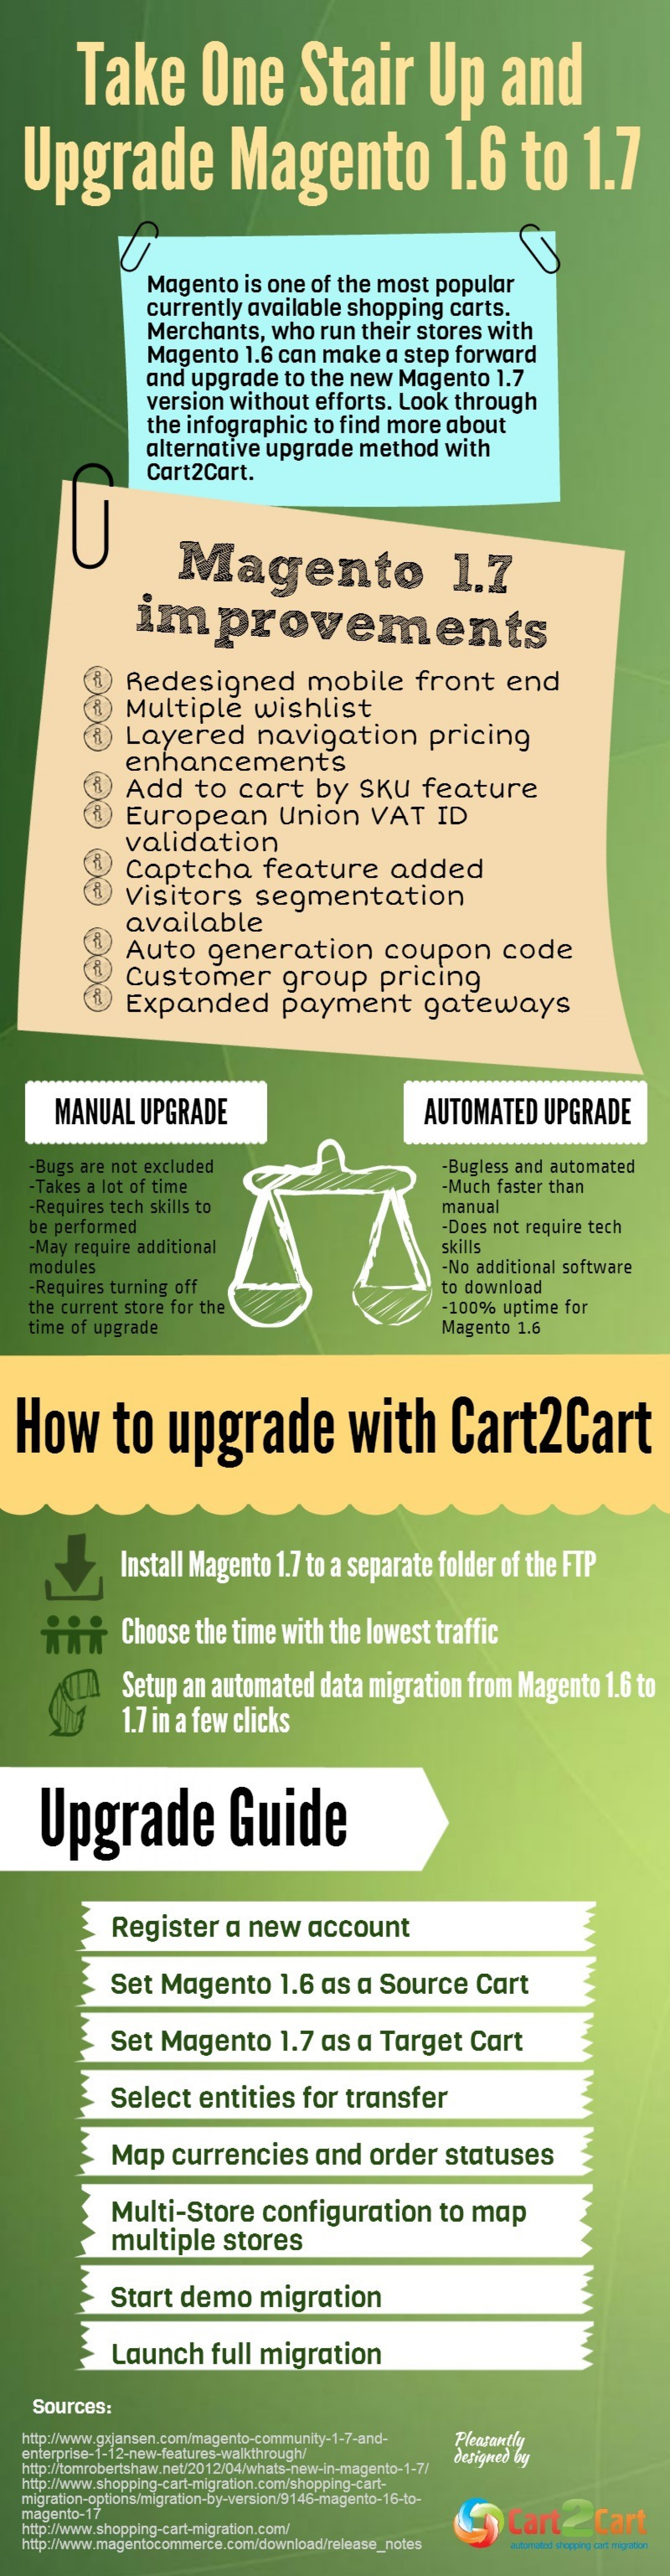 Take One Stair Up and Upgrade Magento 1.6 to 1.7 Infographic